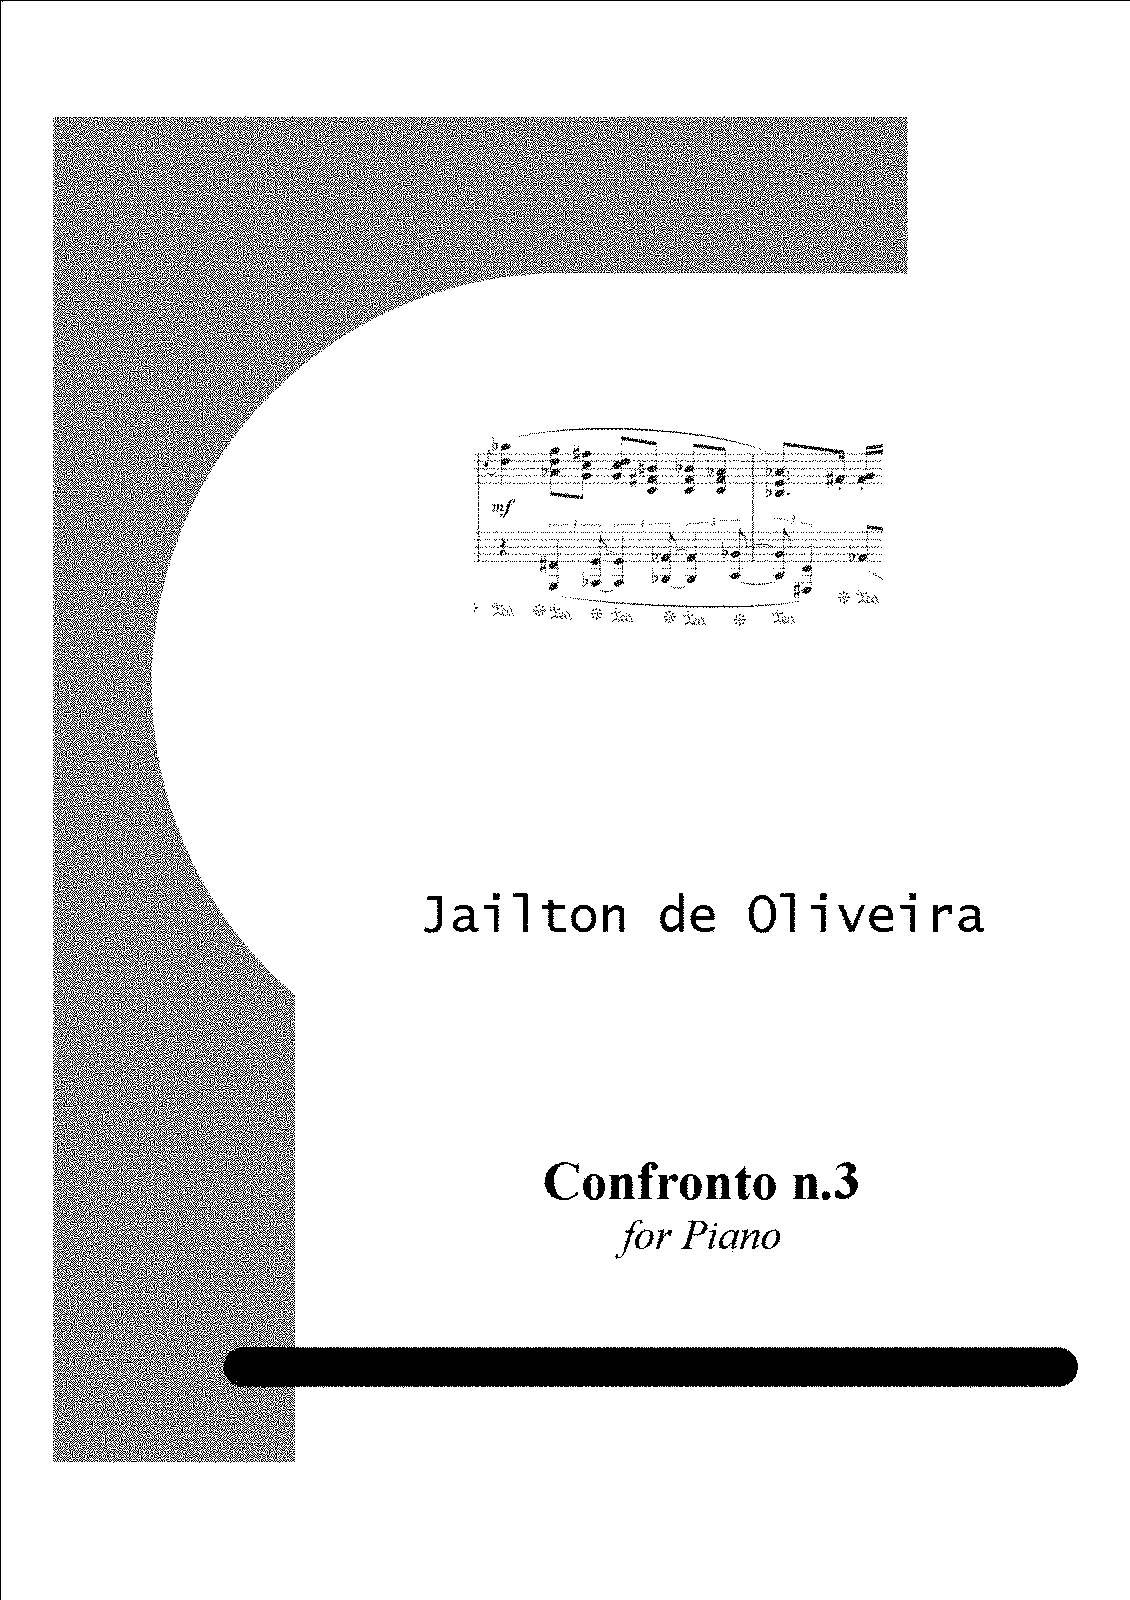 PMLP421038-confronto3 for piano.pdf